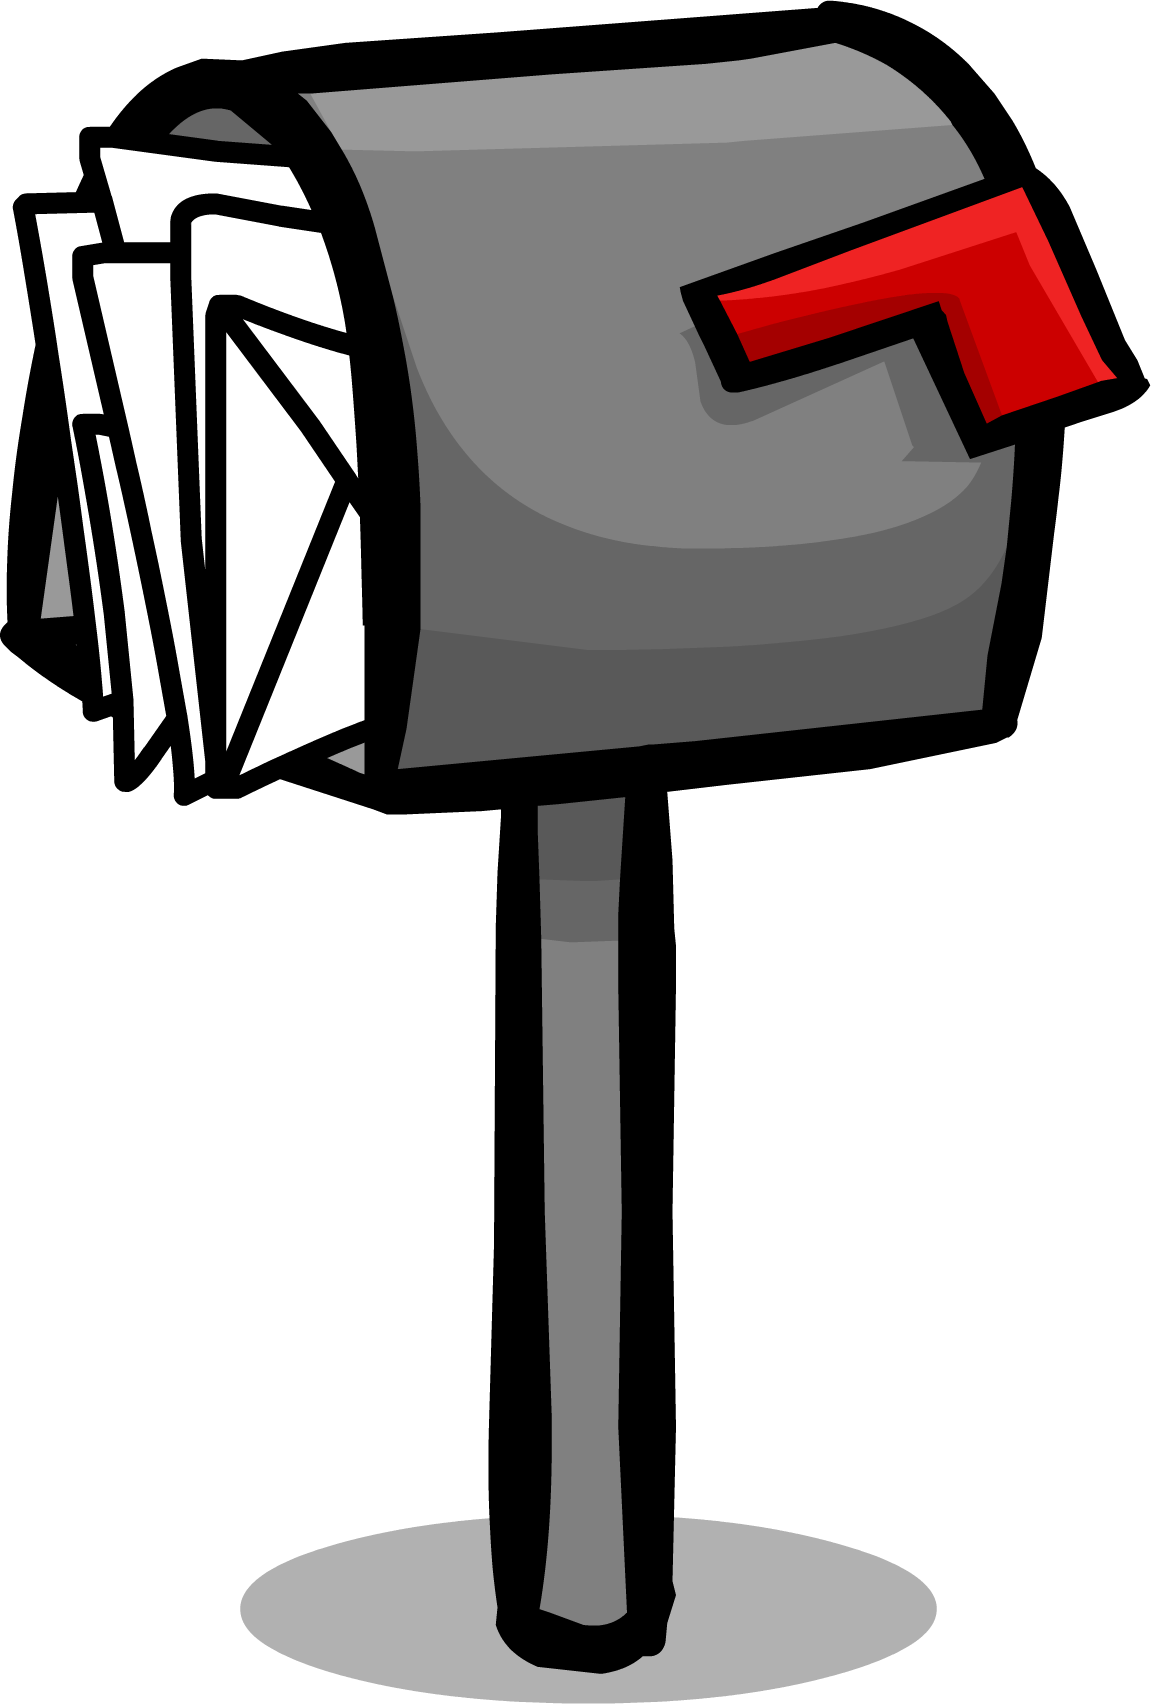 Mail clipart mailbox. Postbox png images free